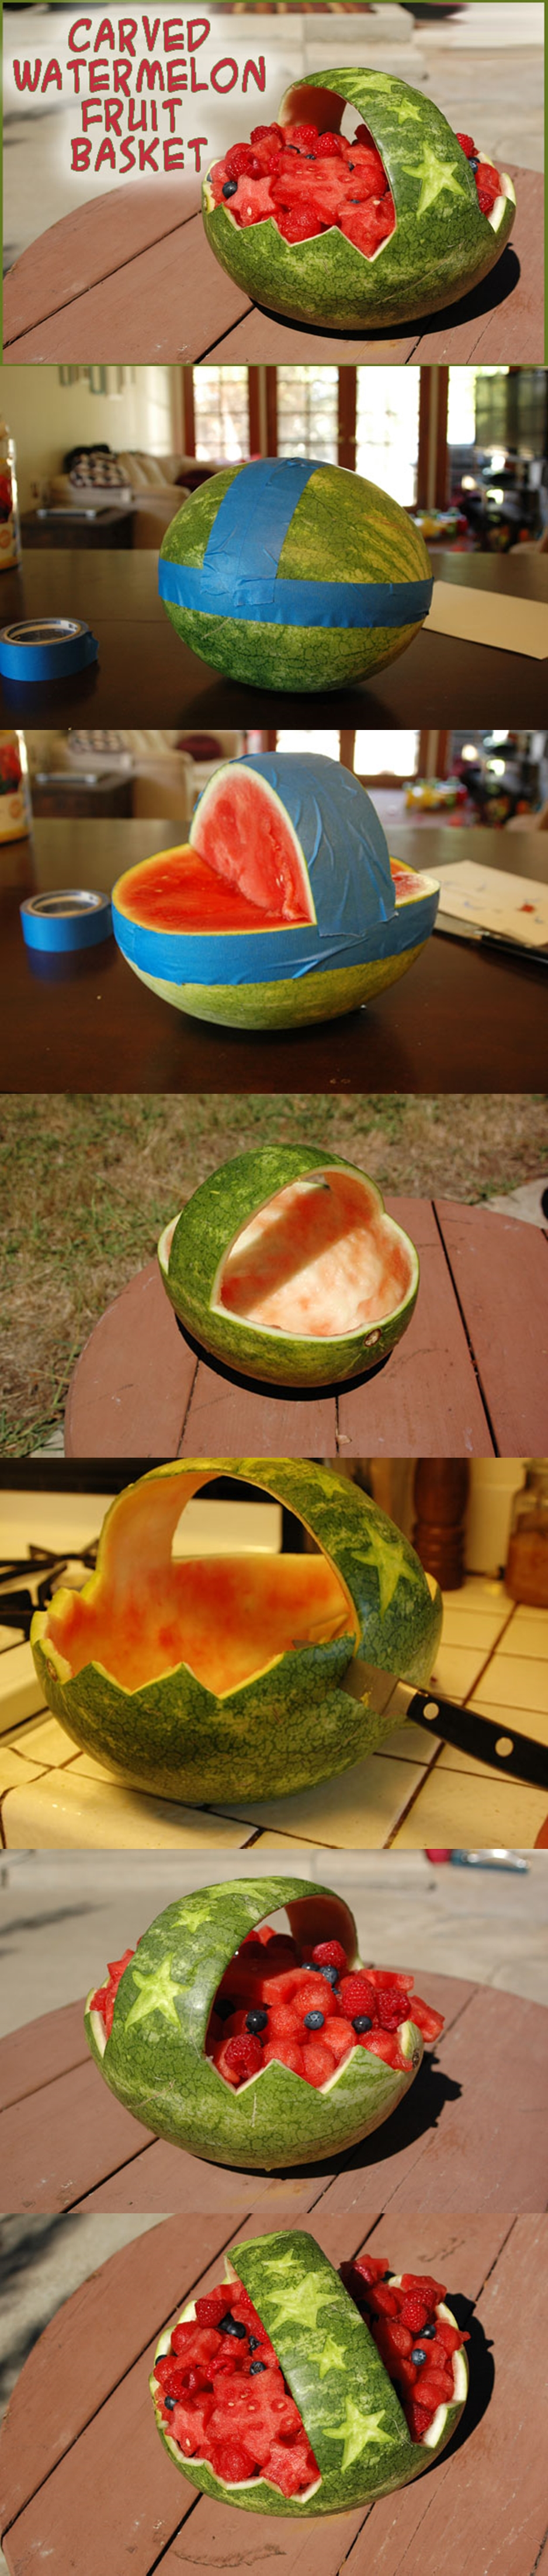 Carved Watermelon Basket M Wonderful DIY Watermelon Basket